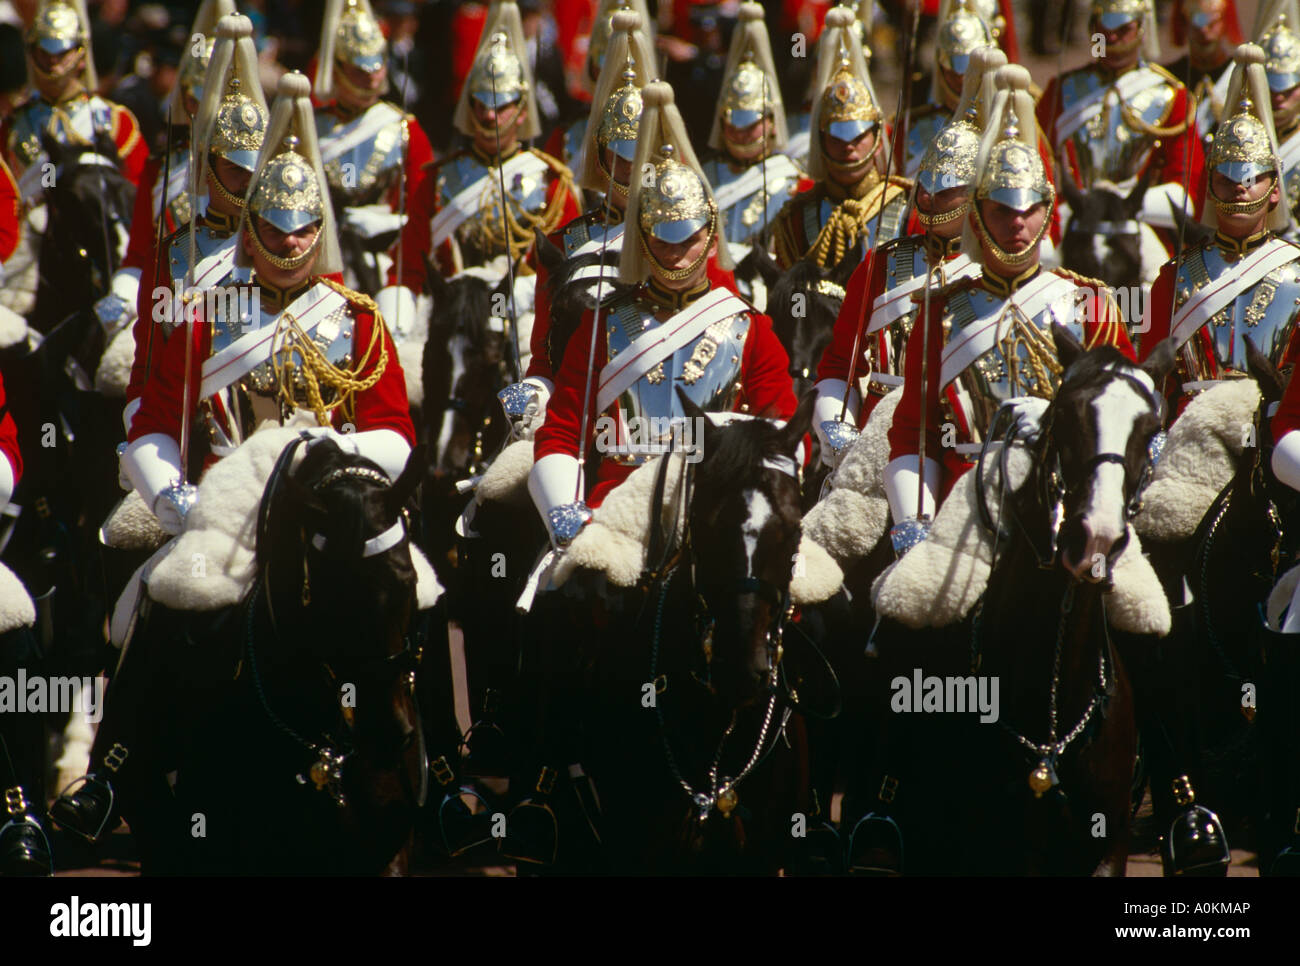 Household Cavalry parade along The Mall in London at the Trooping of the Colour ceremony in June - Stock Image